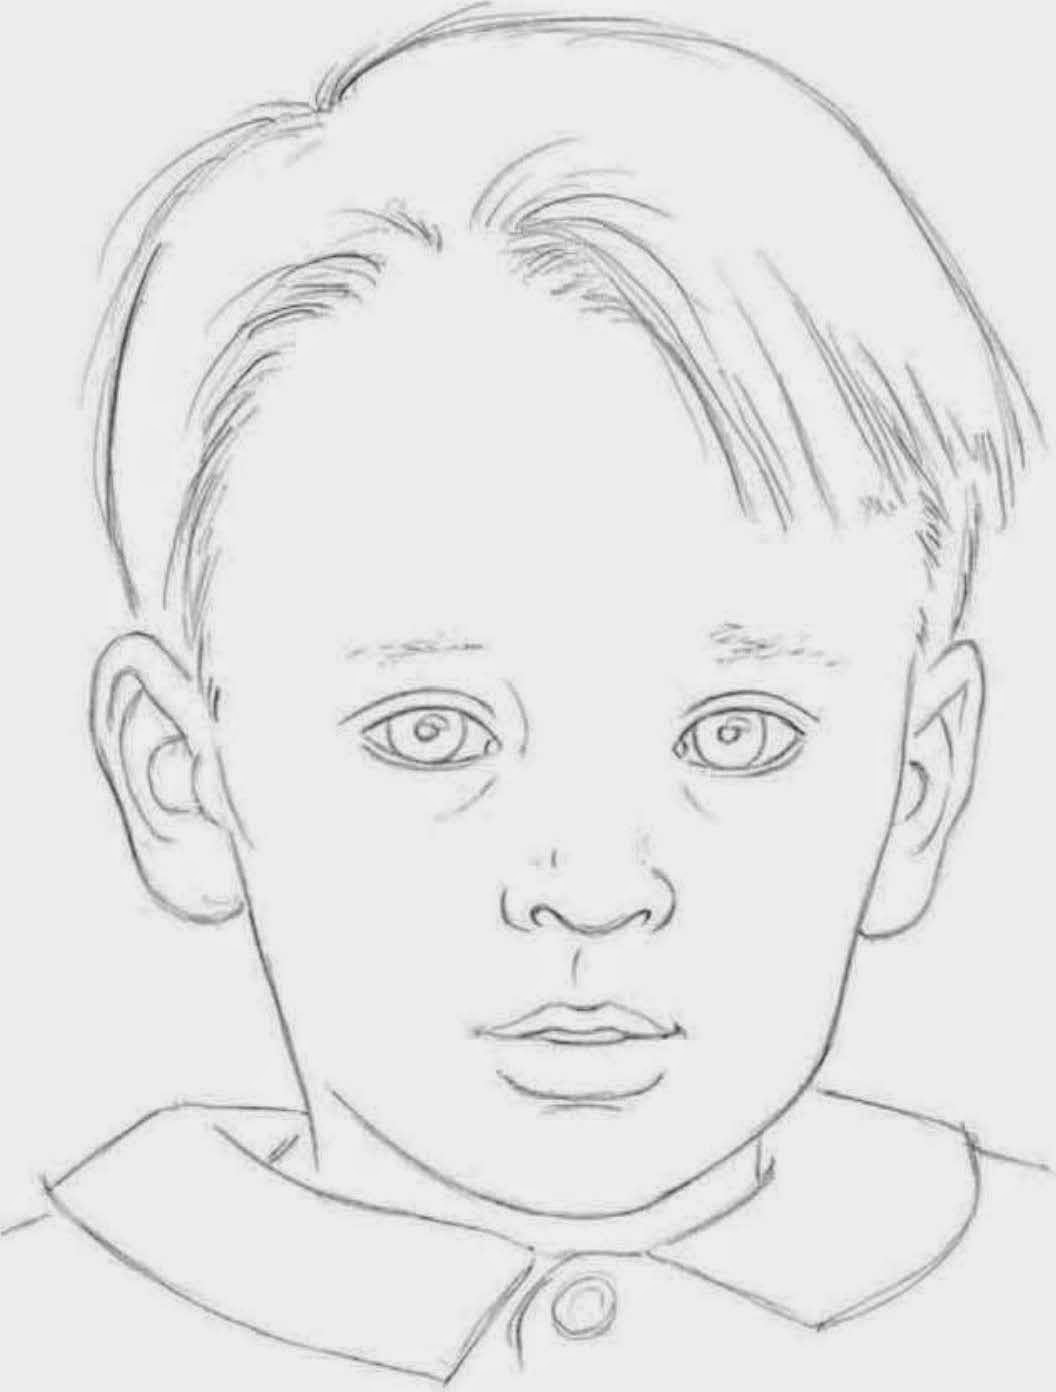 childrens facial proportions - Drawing Pictures For Children